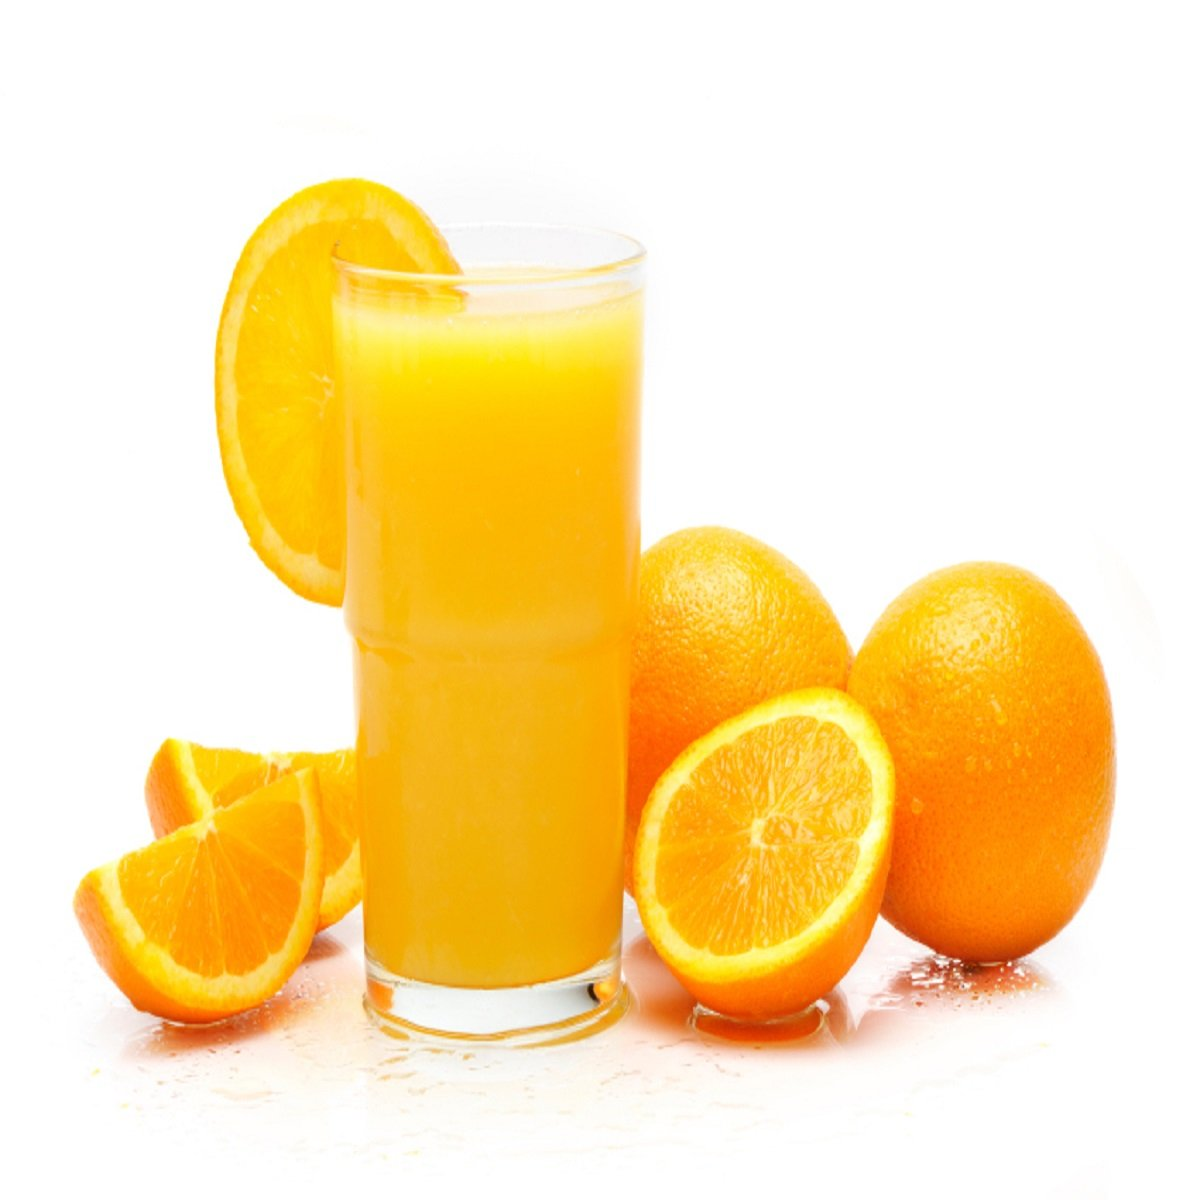 FRESH SQUEEZED ORANGES OIL - 8 OZ - FOR CANDLE & SOAP MAKING BY VIRGINIA CANDLE SUPPLY - FREE S&H IN USA